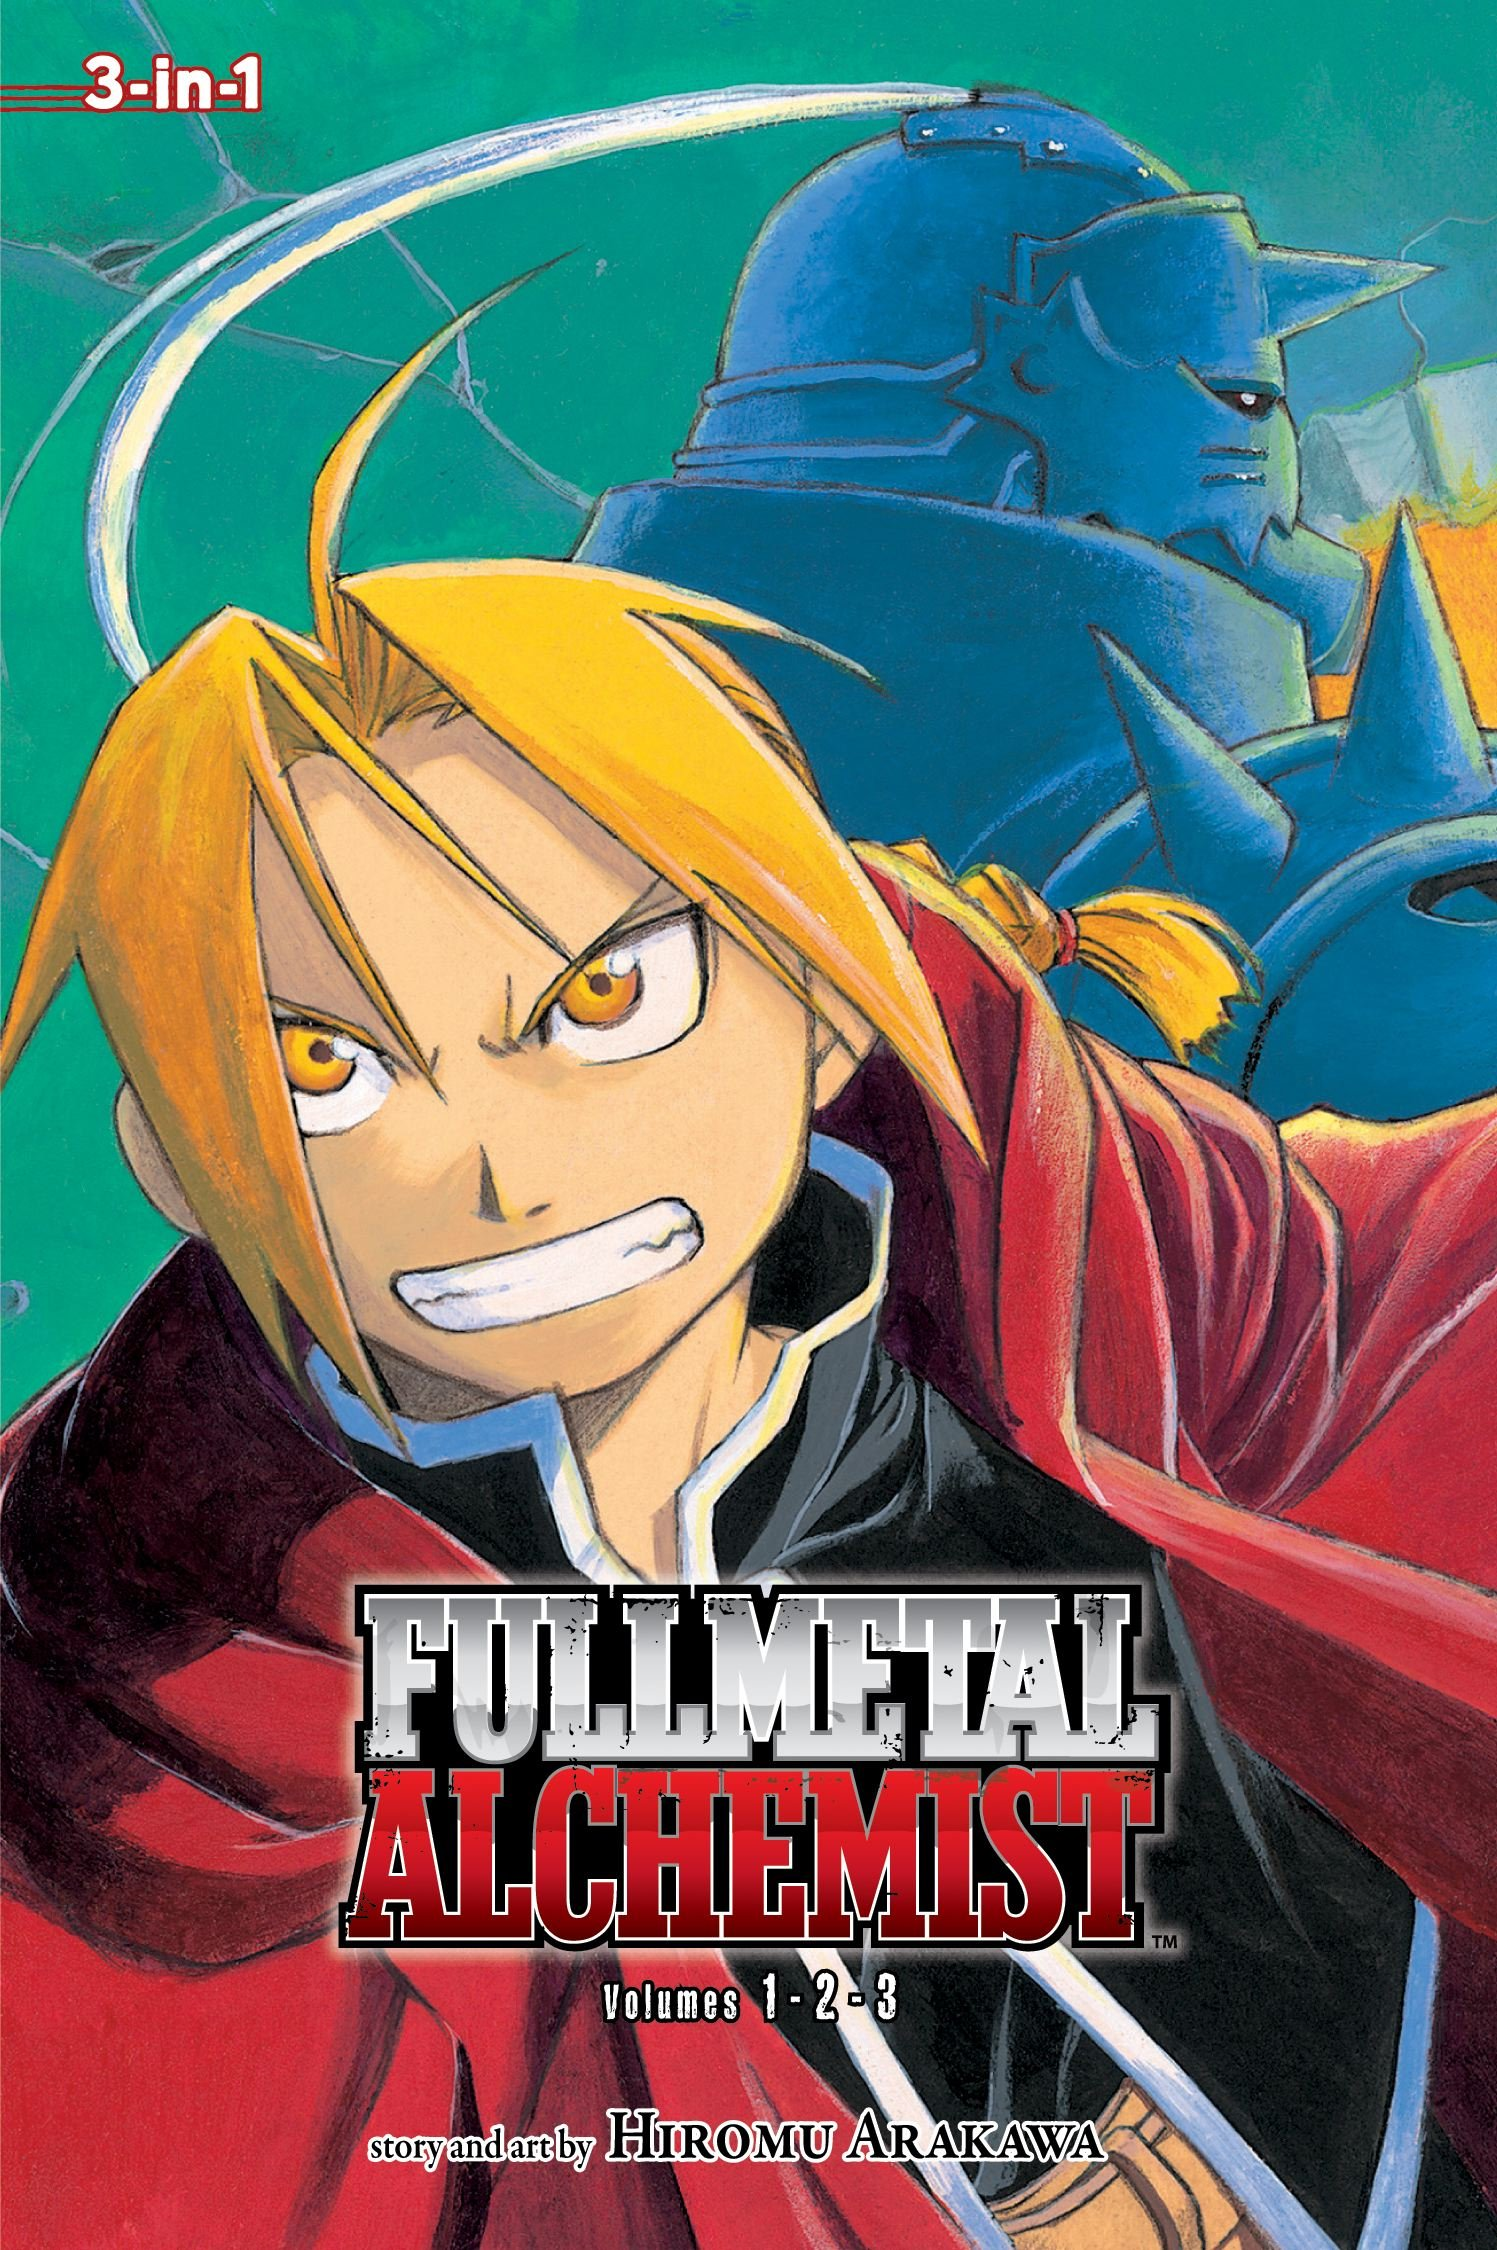 1 manga comics Japanese original version Fullmetal Alchemist